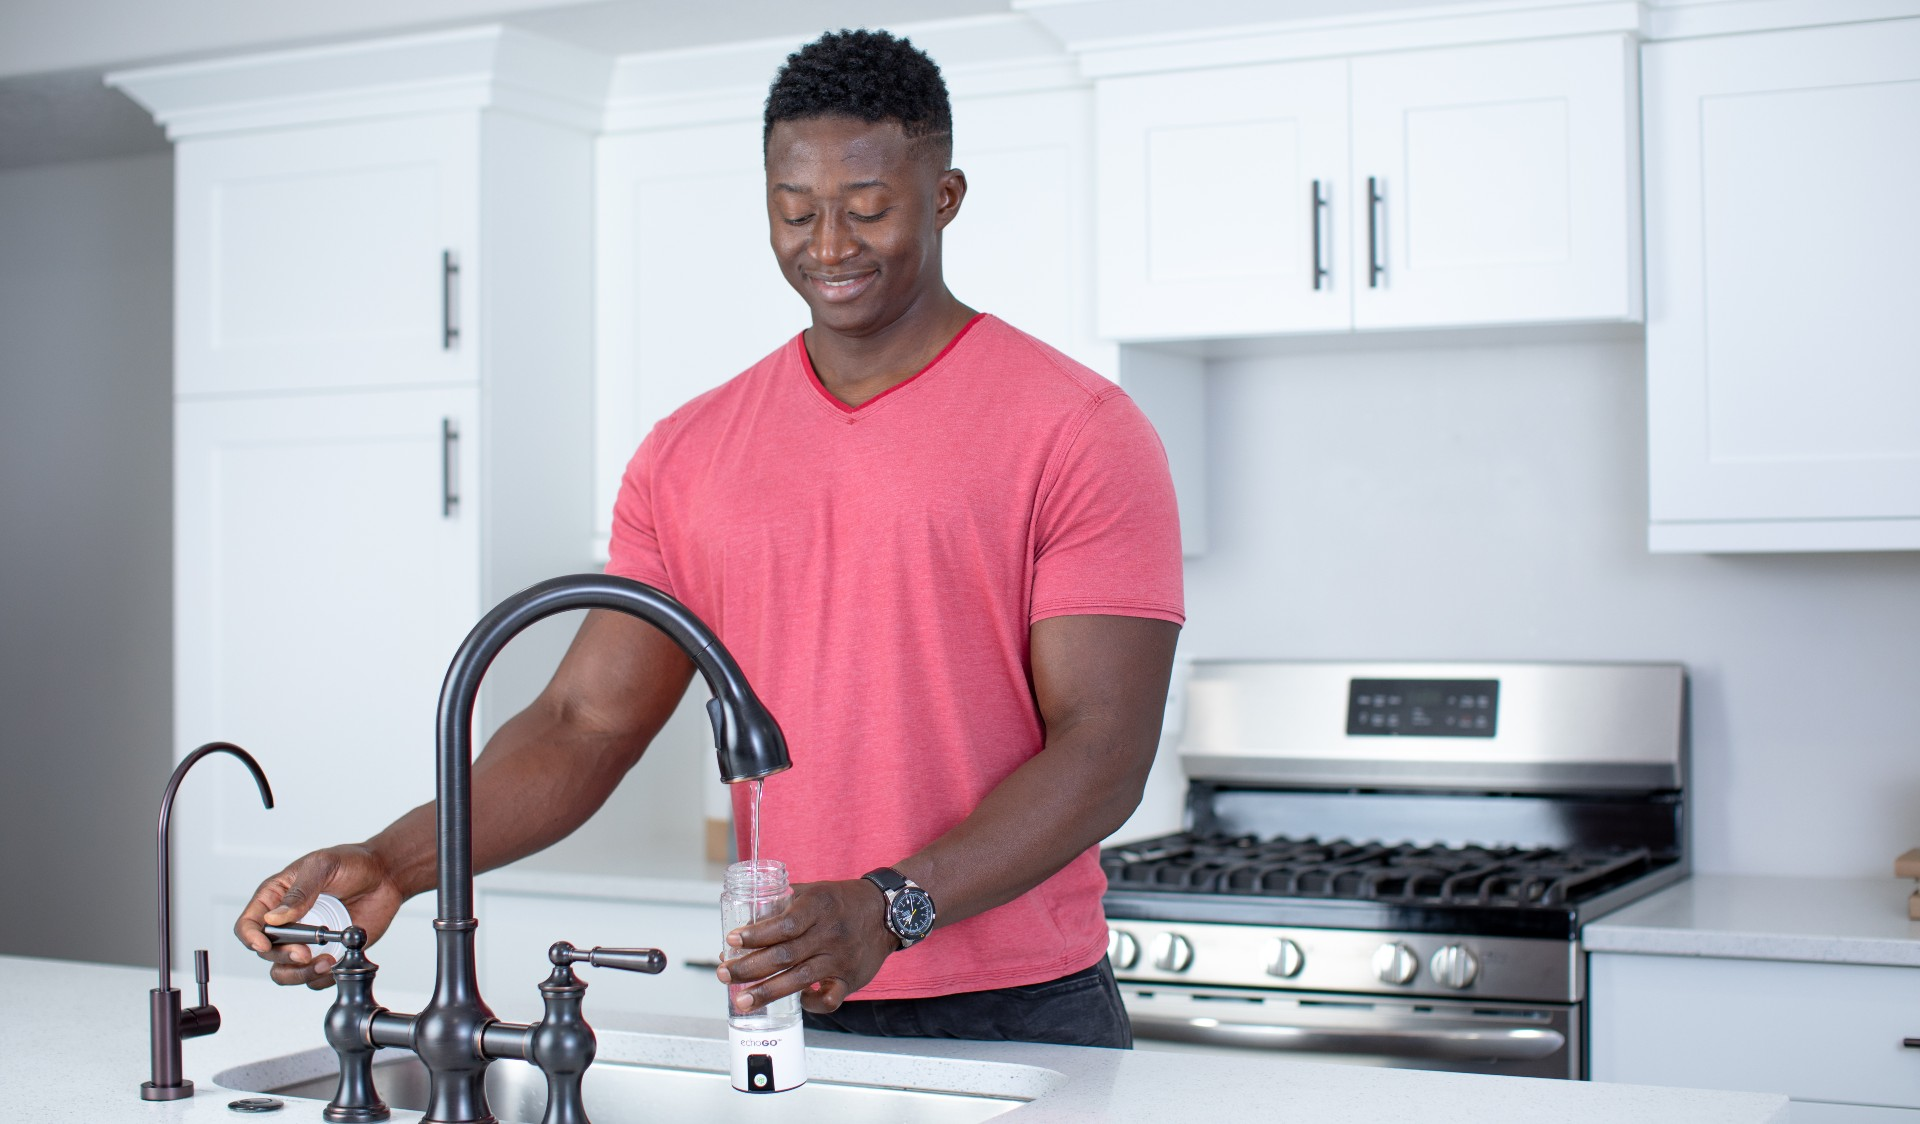 Man filling up the Echo Go hydrogen water bottle at his kitchen sink